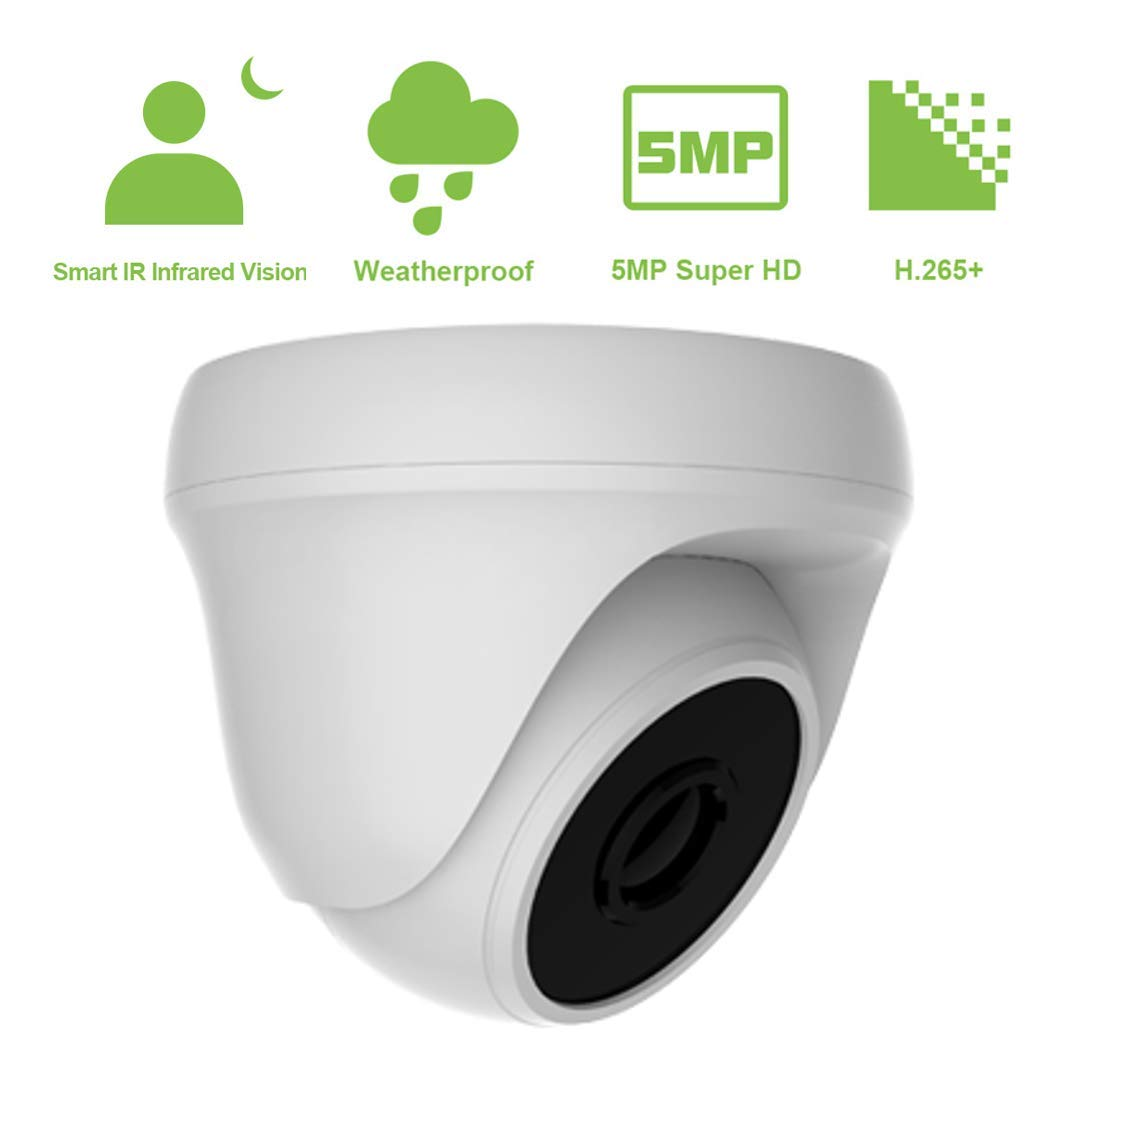 5MP Surveillance Security Camera for Home, Hybrid 4-in-1 CVBS CCTV Surveillance Weatherproof Dome Security Camera,Metal Housing, Outdoor Indoor, Night Vision, Wide Angle Viewing White